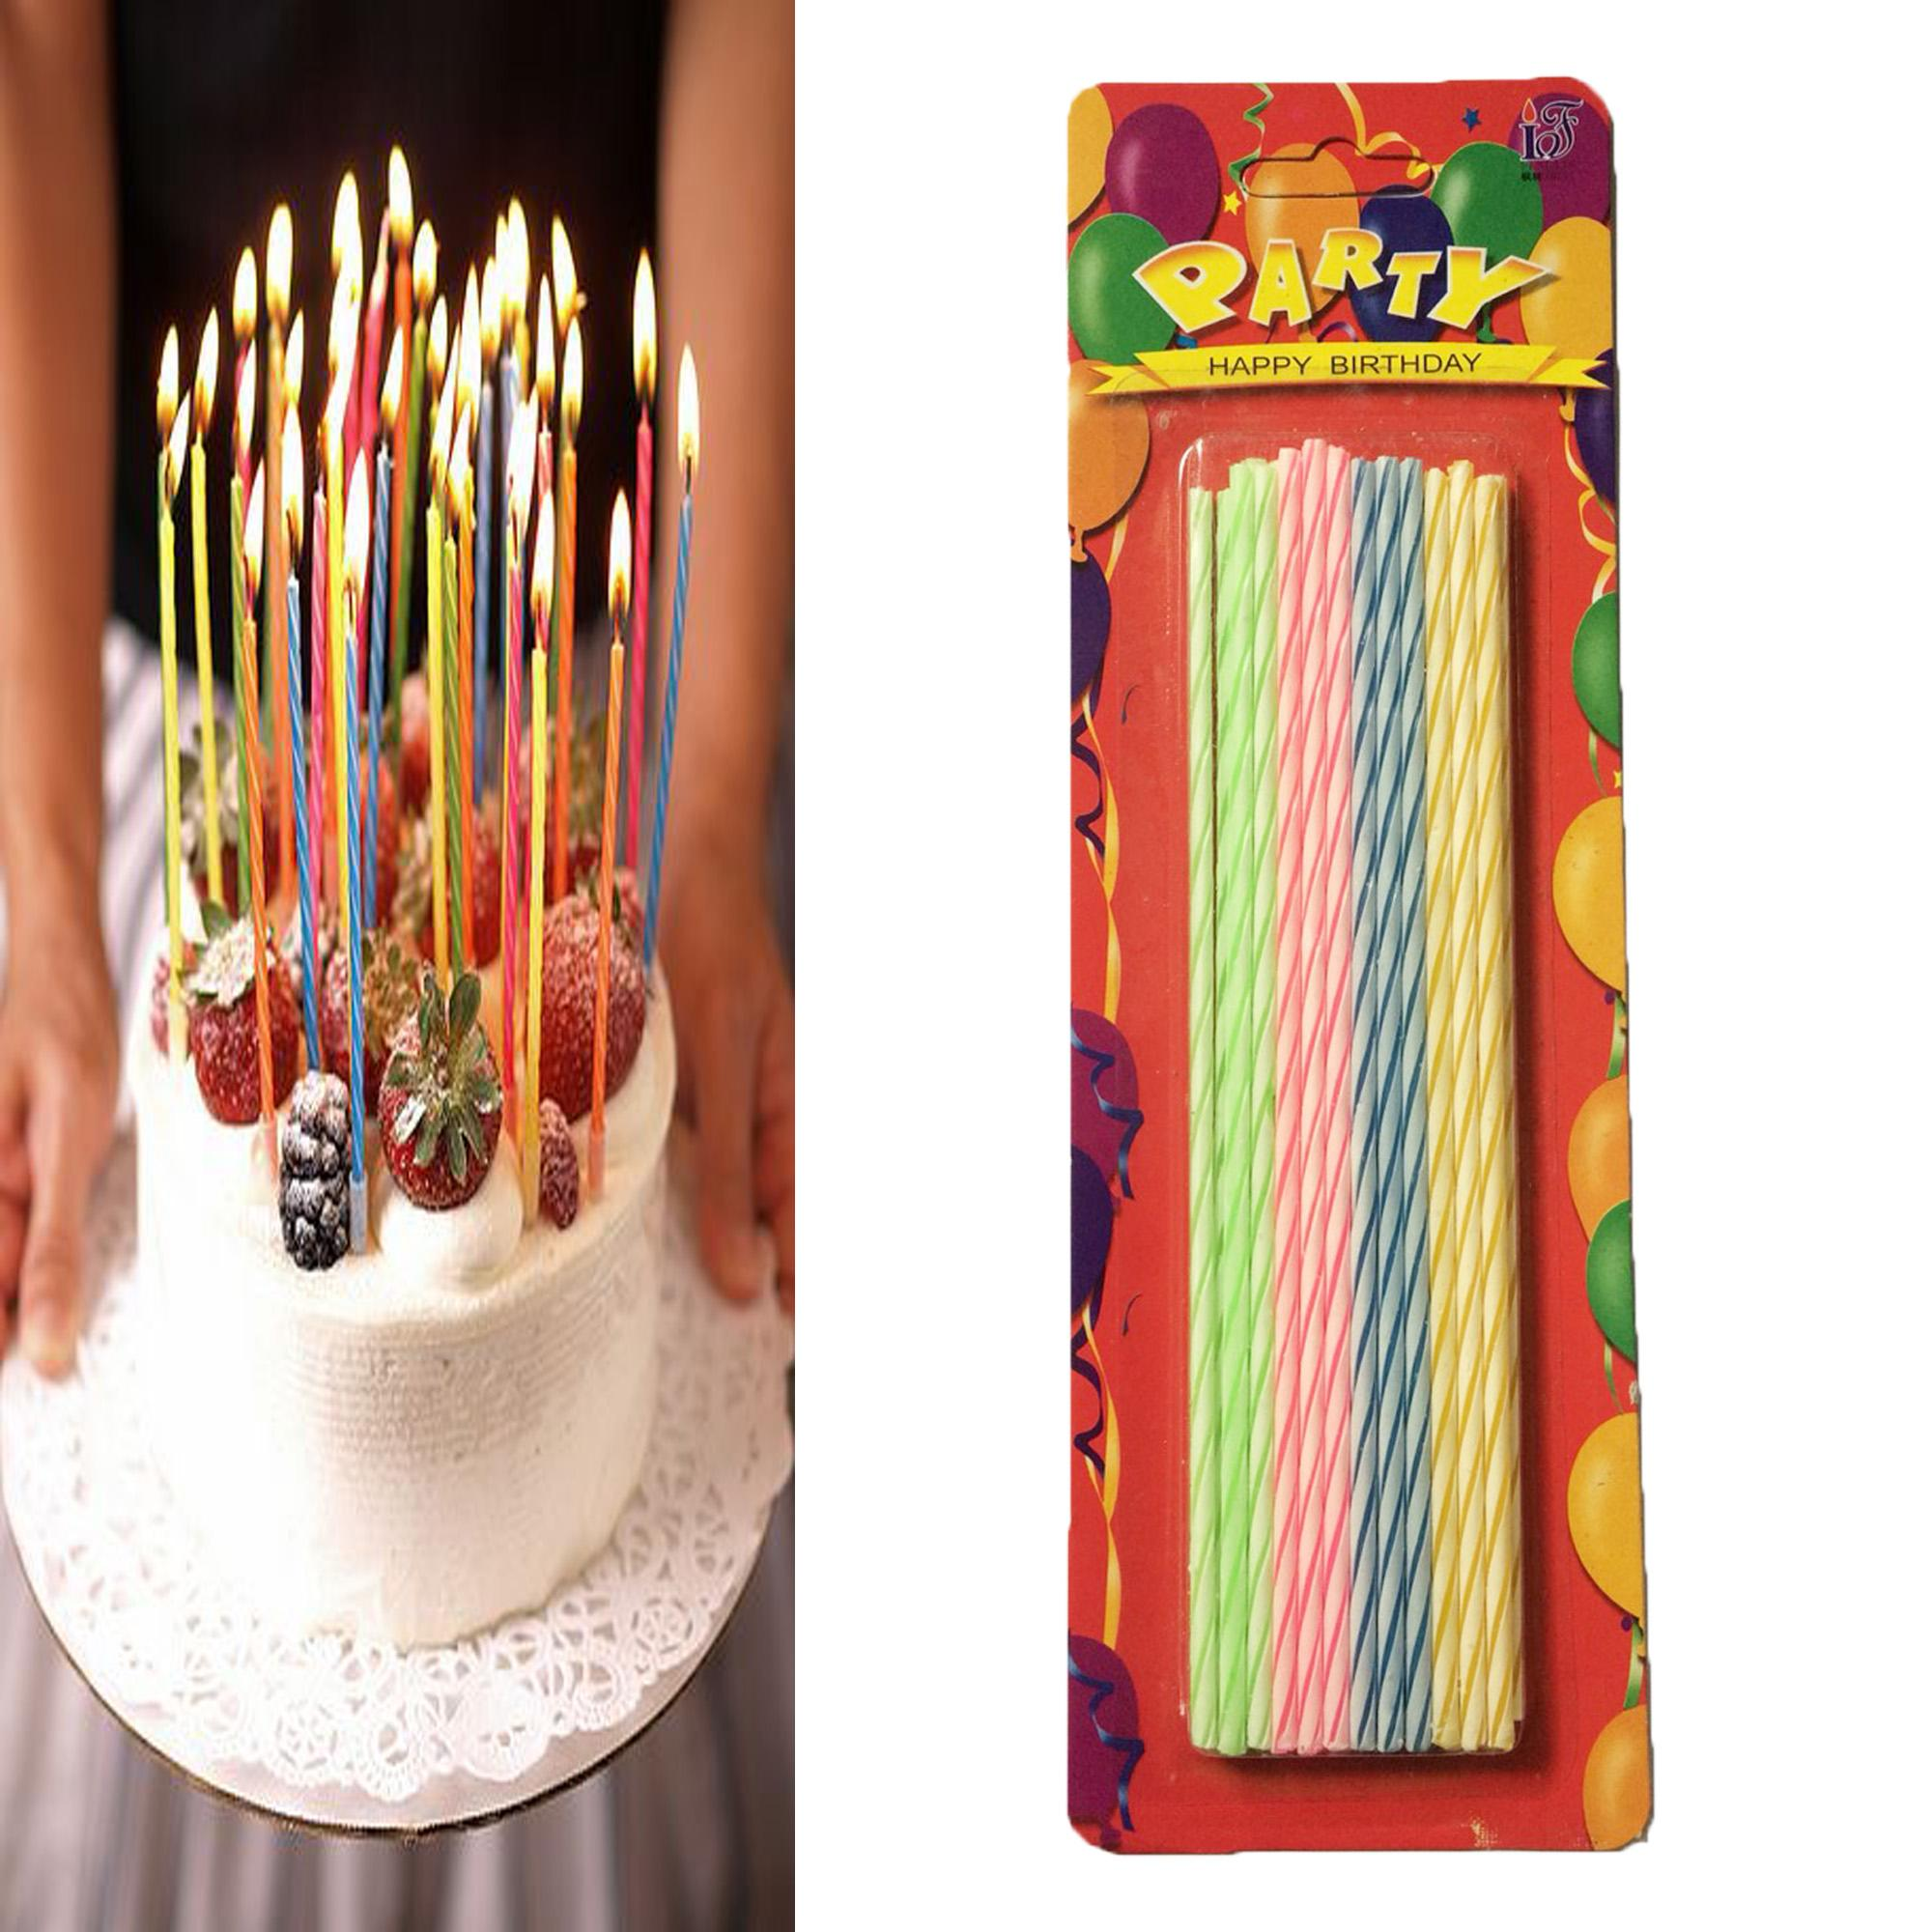 Happy Birthday Candle Cake Cupcake Topper Thin Long Candle 35g image